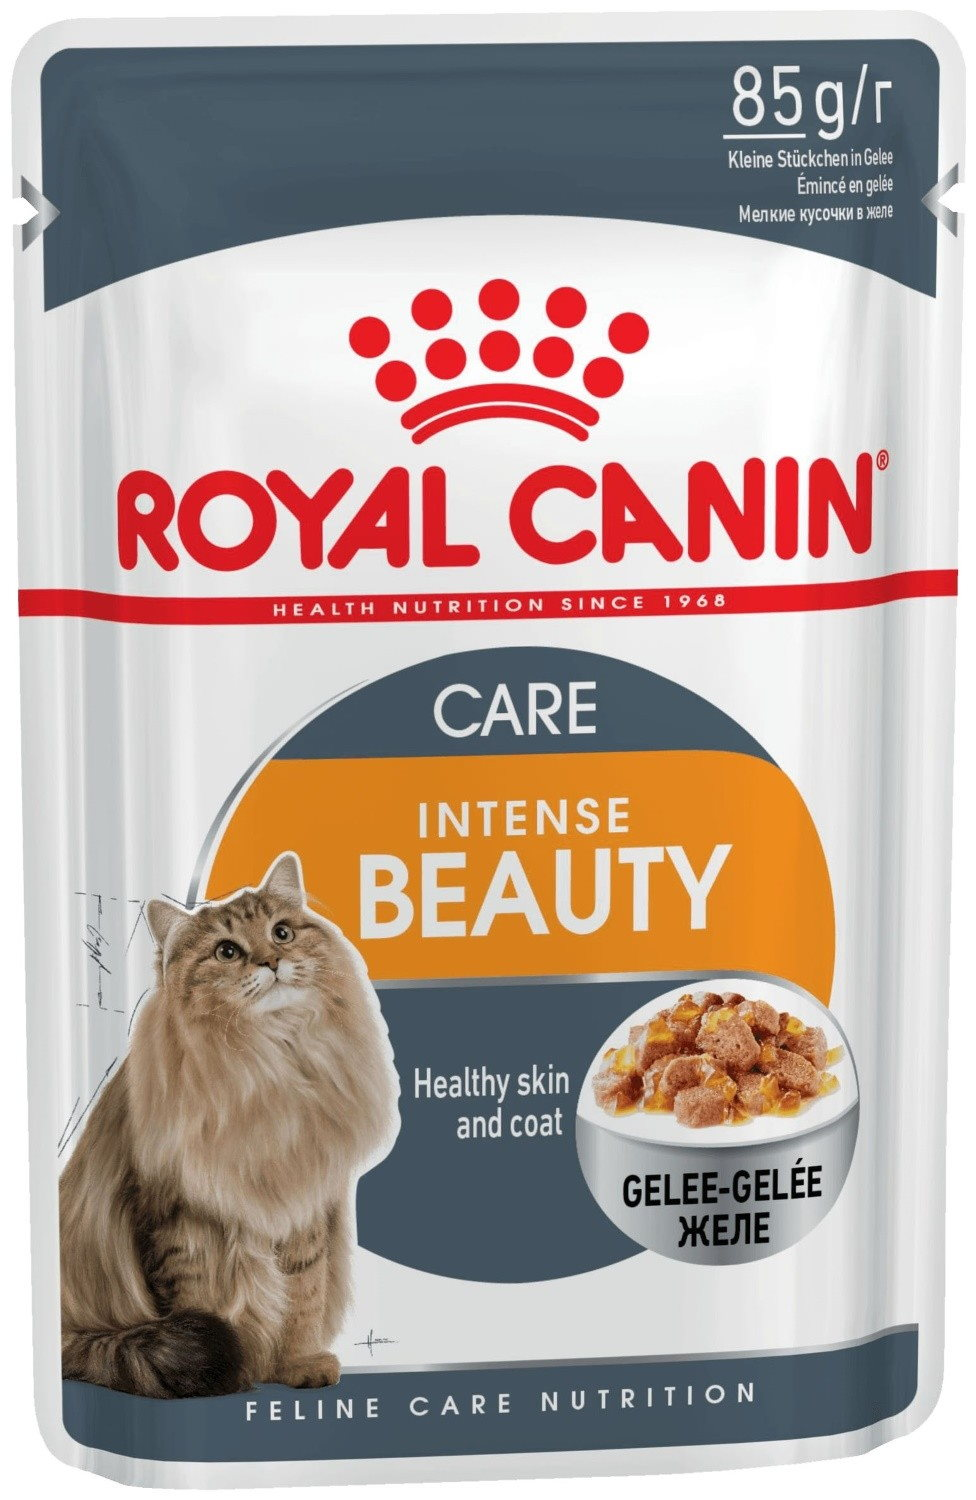 Royal canin картинка